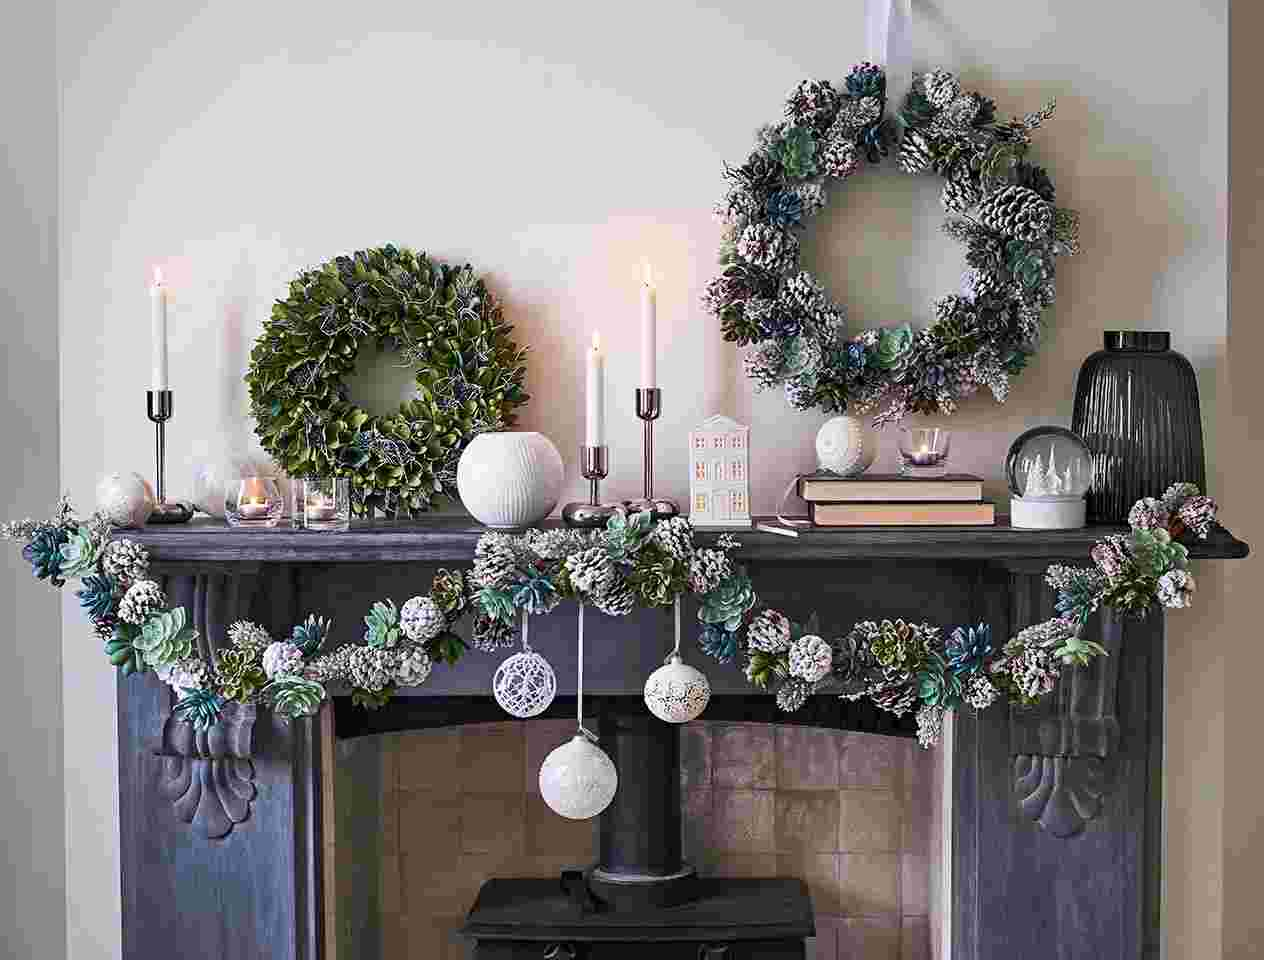 Fireplace decorated with Christmas baubles and wreaths